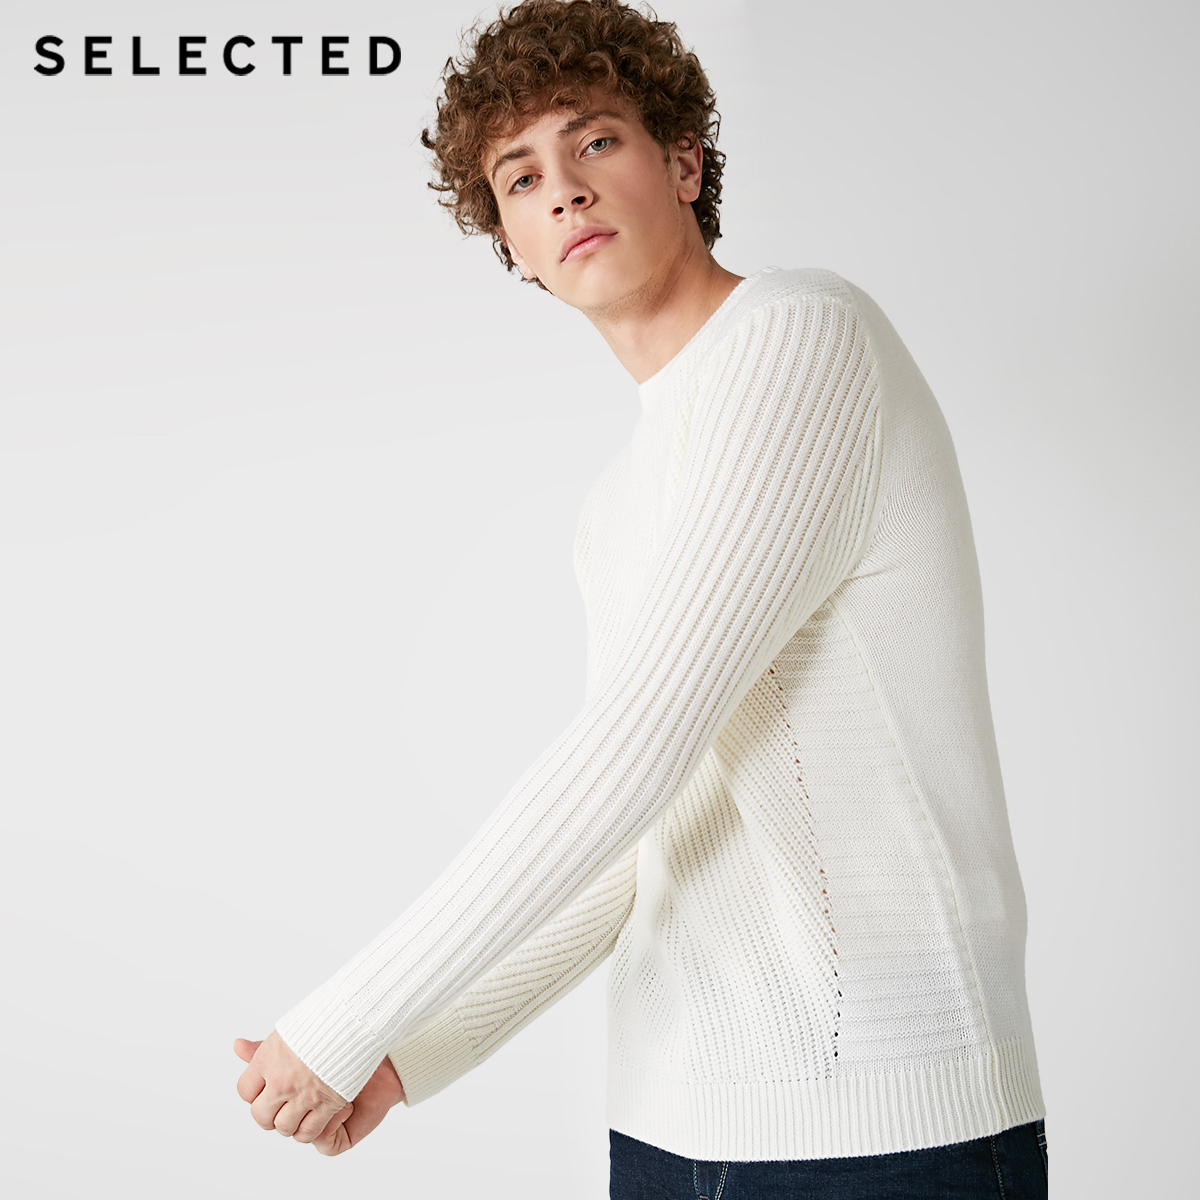 SELECTED Men's Wool-blend Round Neckline Knitted Sweater S|418425535